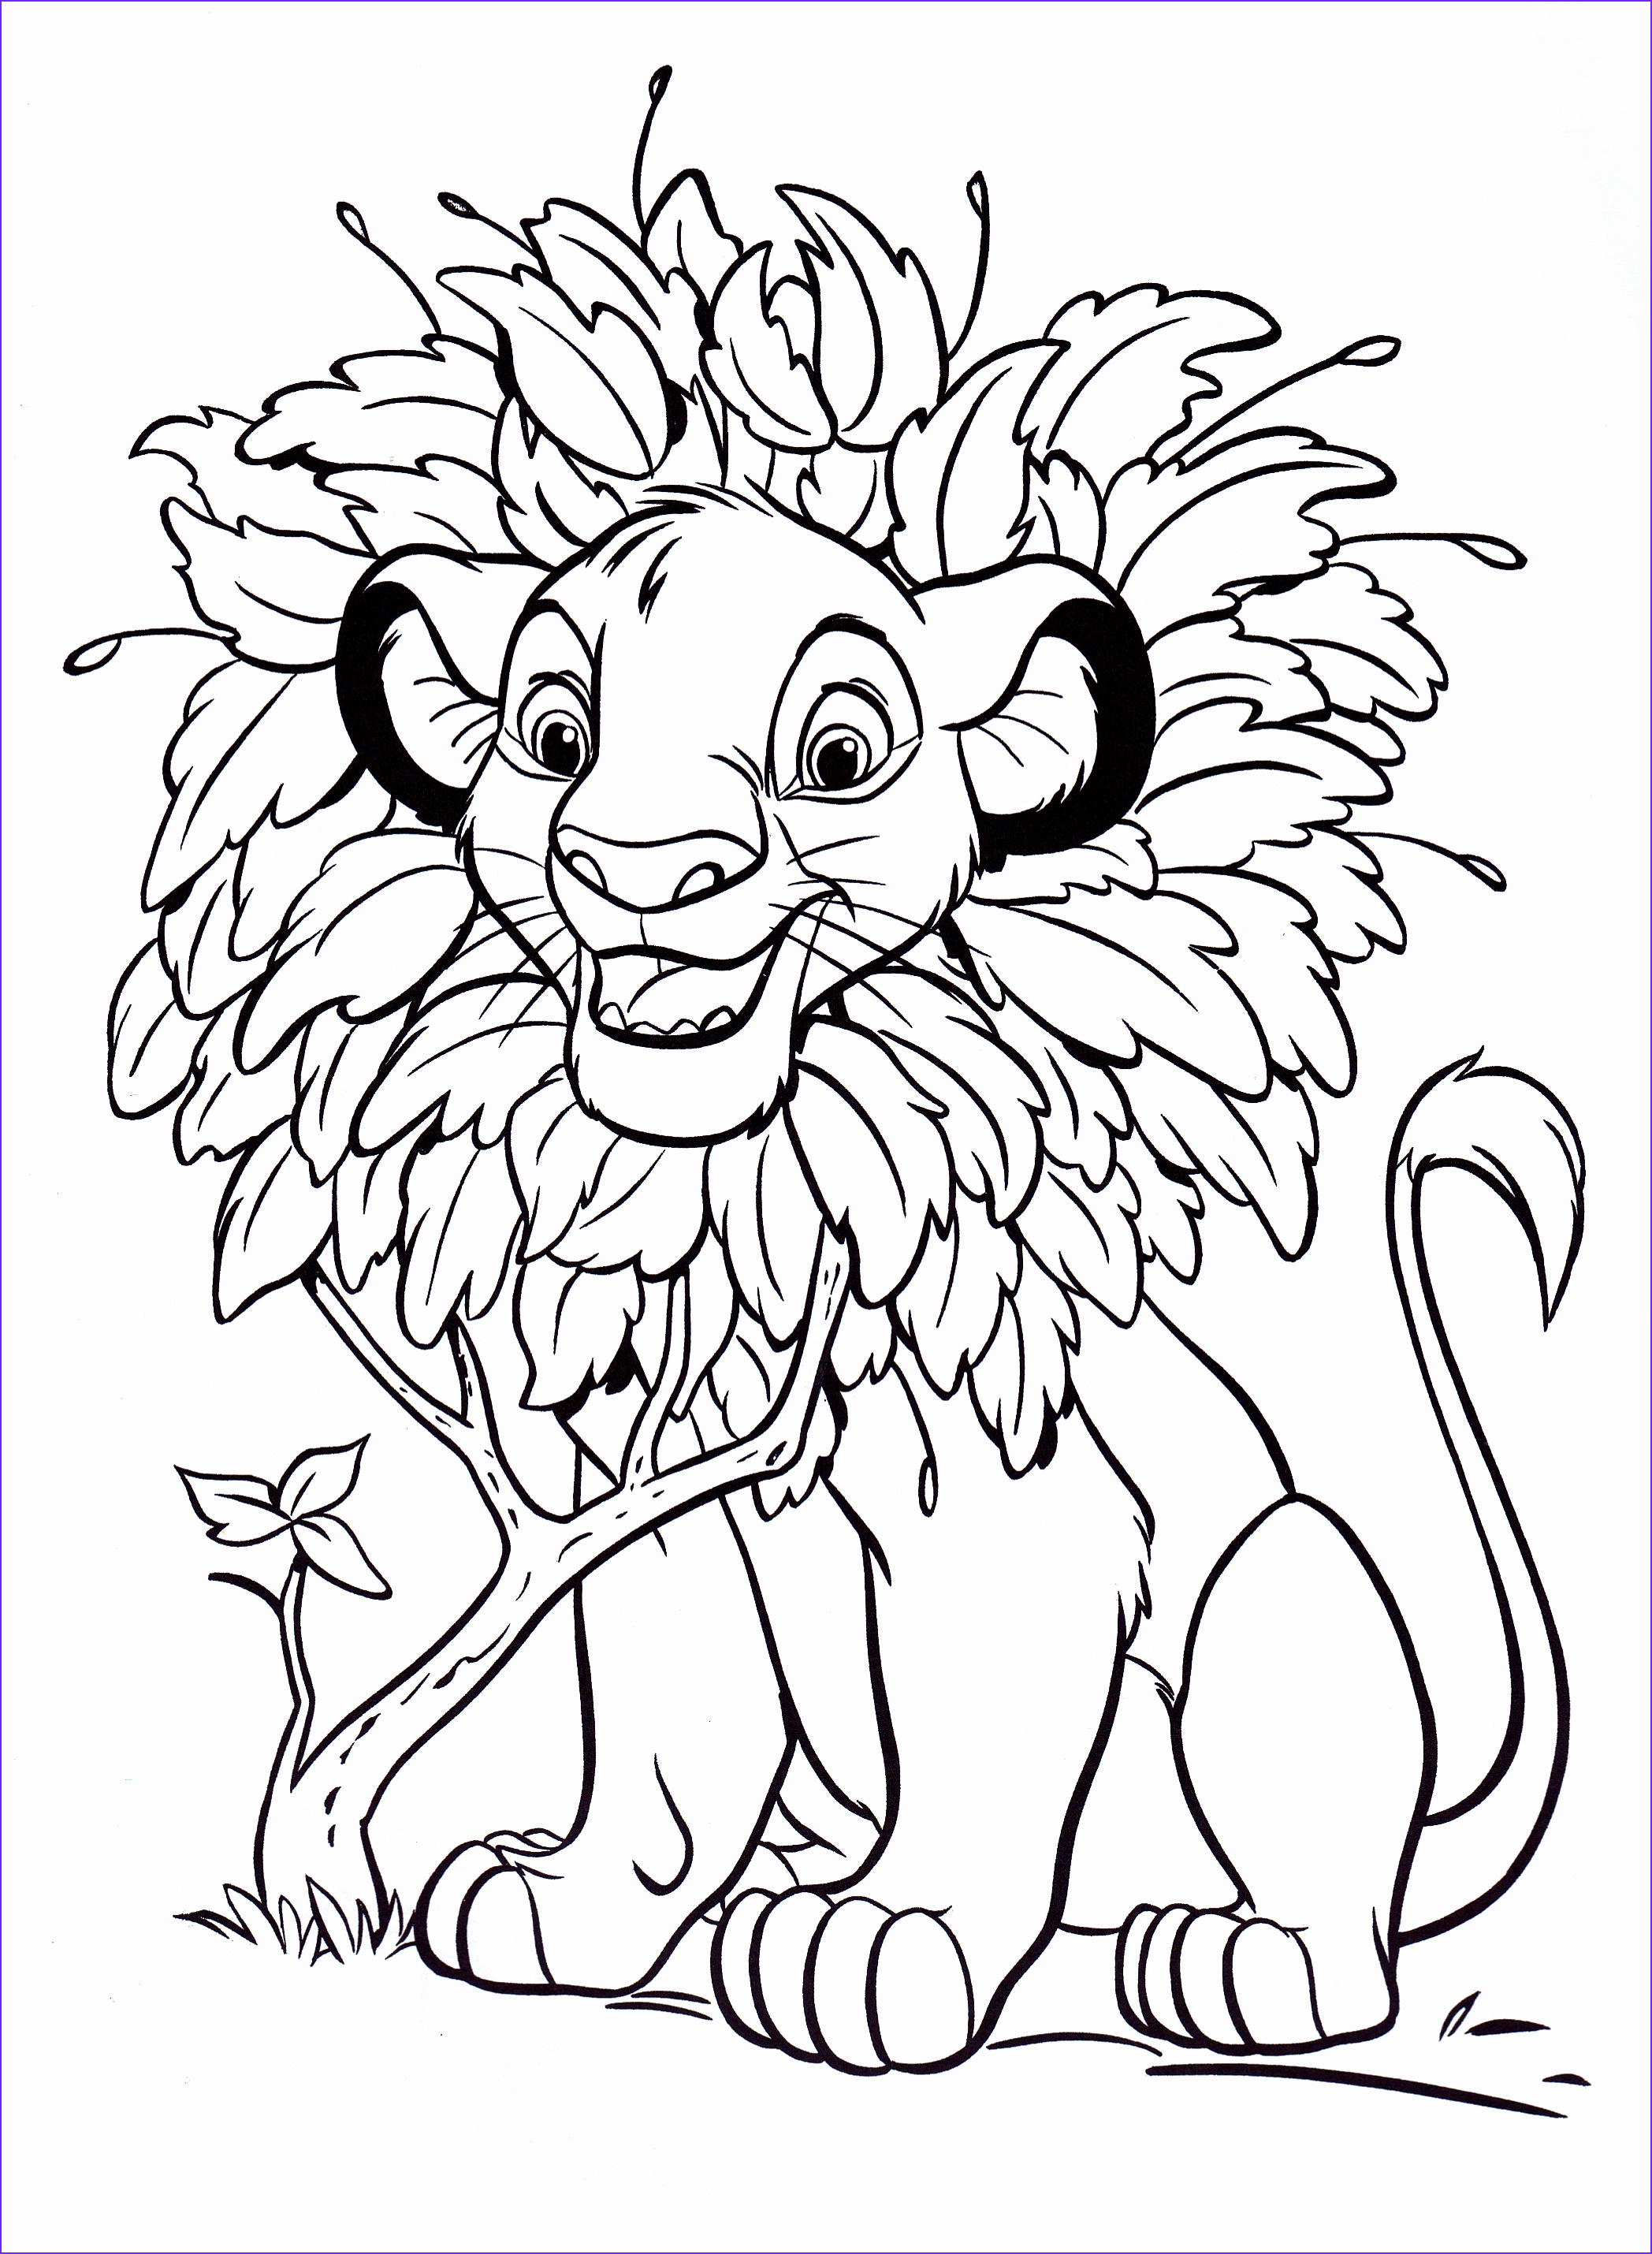 Fun Coloring Pictures New Gallery Free Printable Simba Coloring Pages for Kids